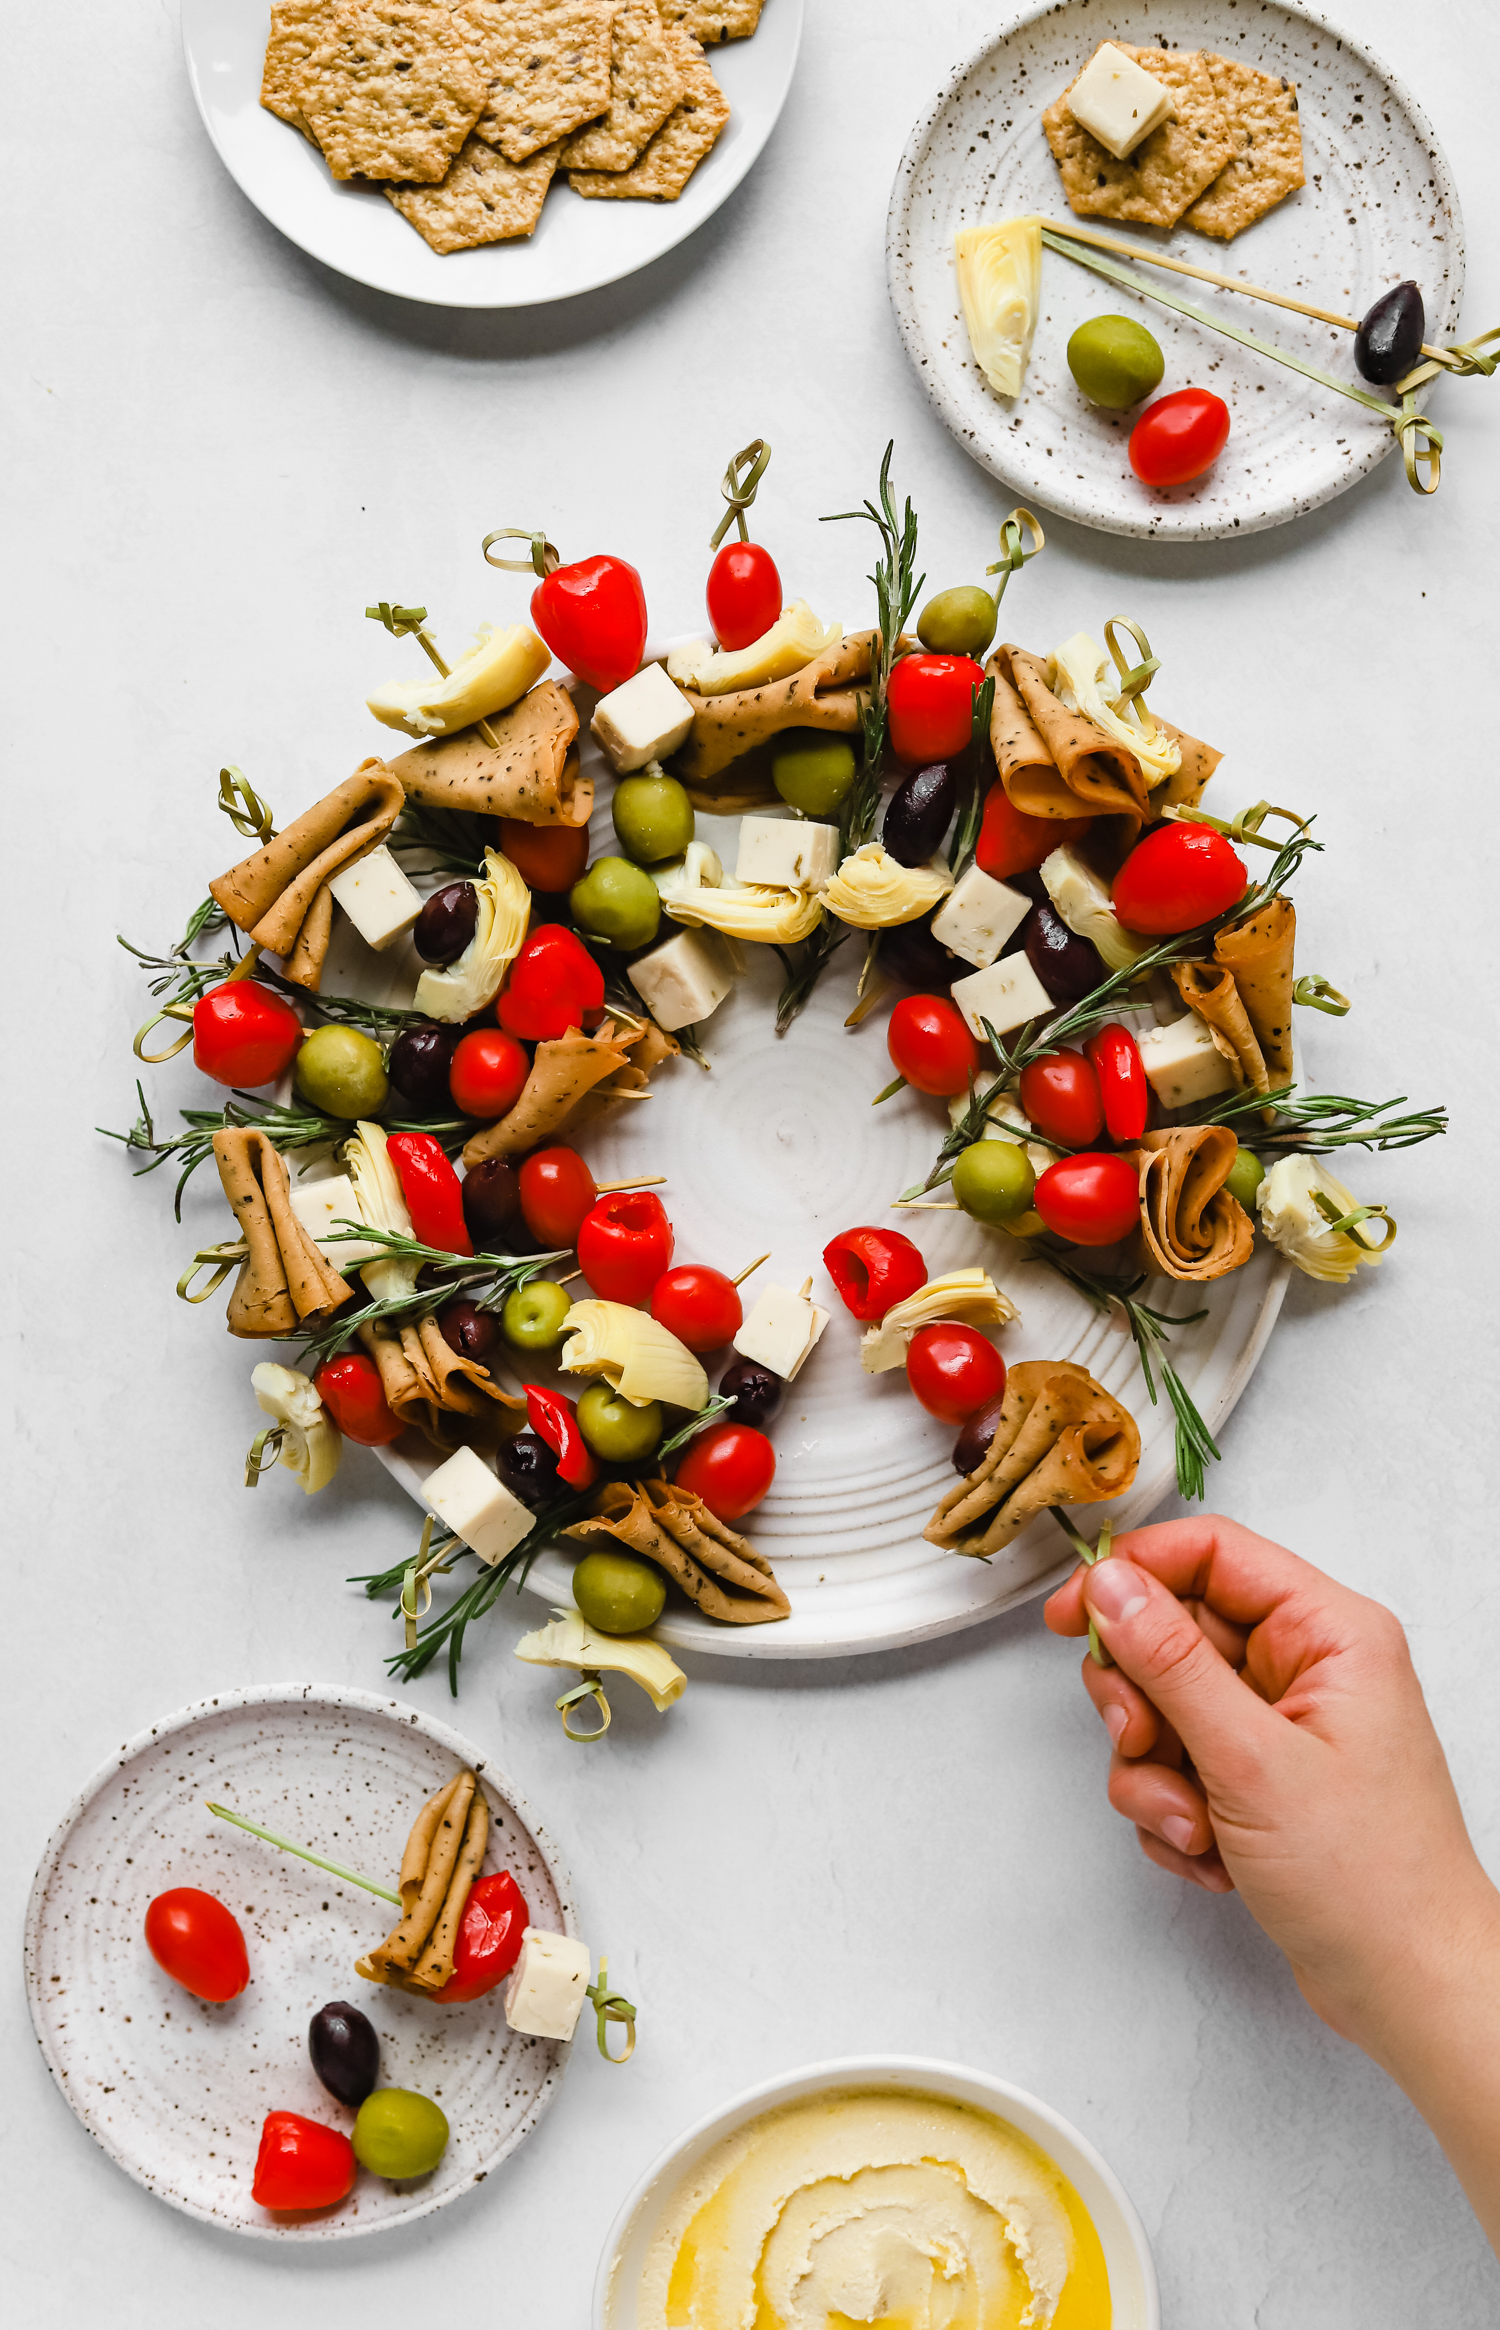 Hand grabbing a skewer from the vegan charcuterie Christmas wreath snack board, surrounded by small plates, crackers, and hummus.